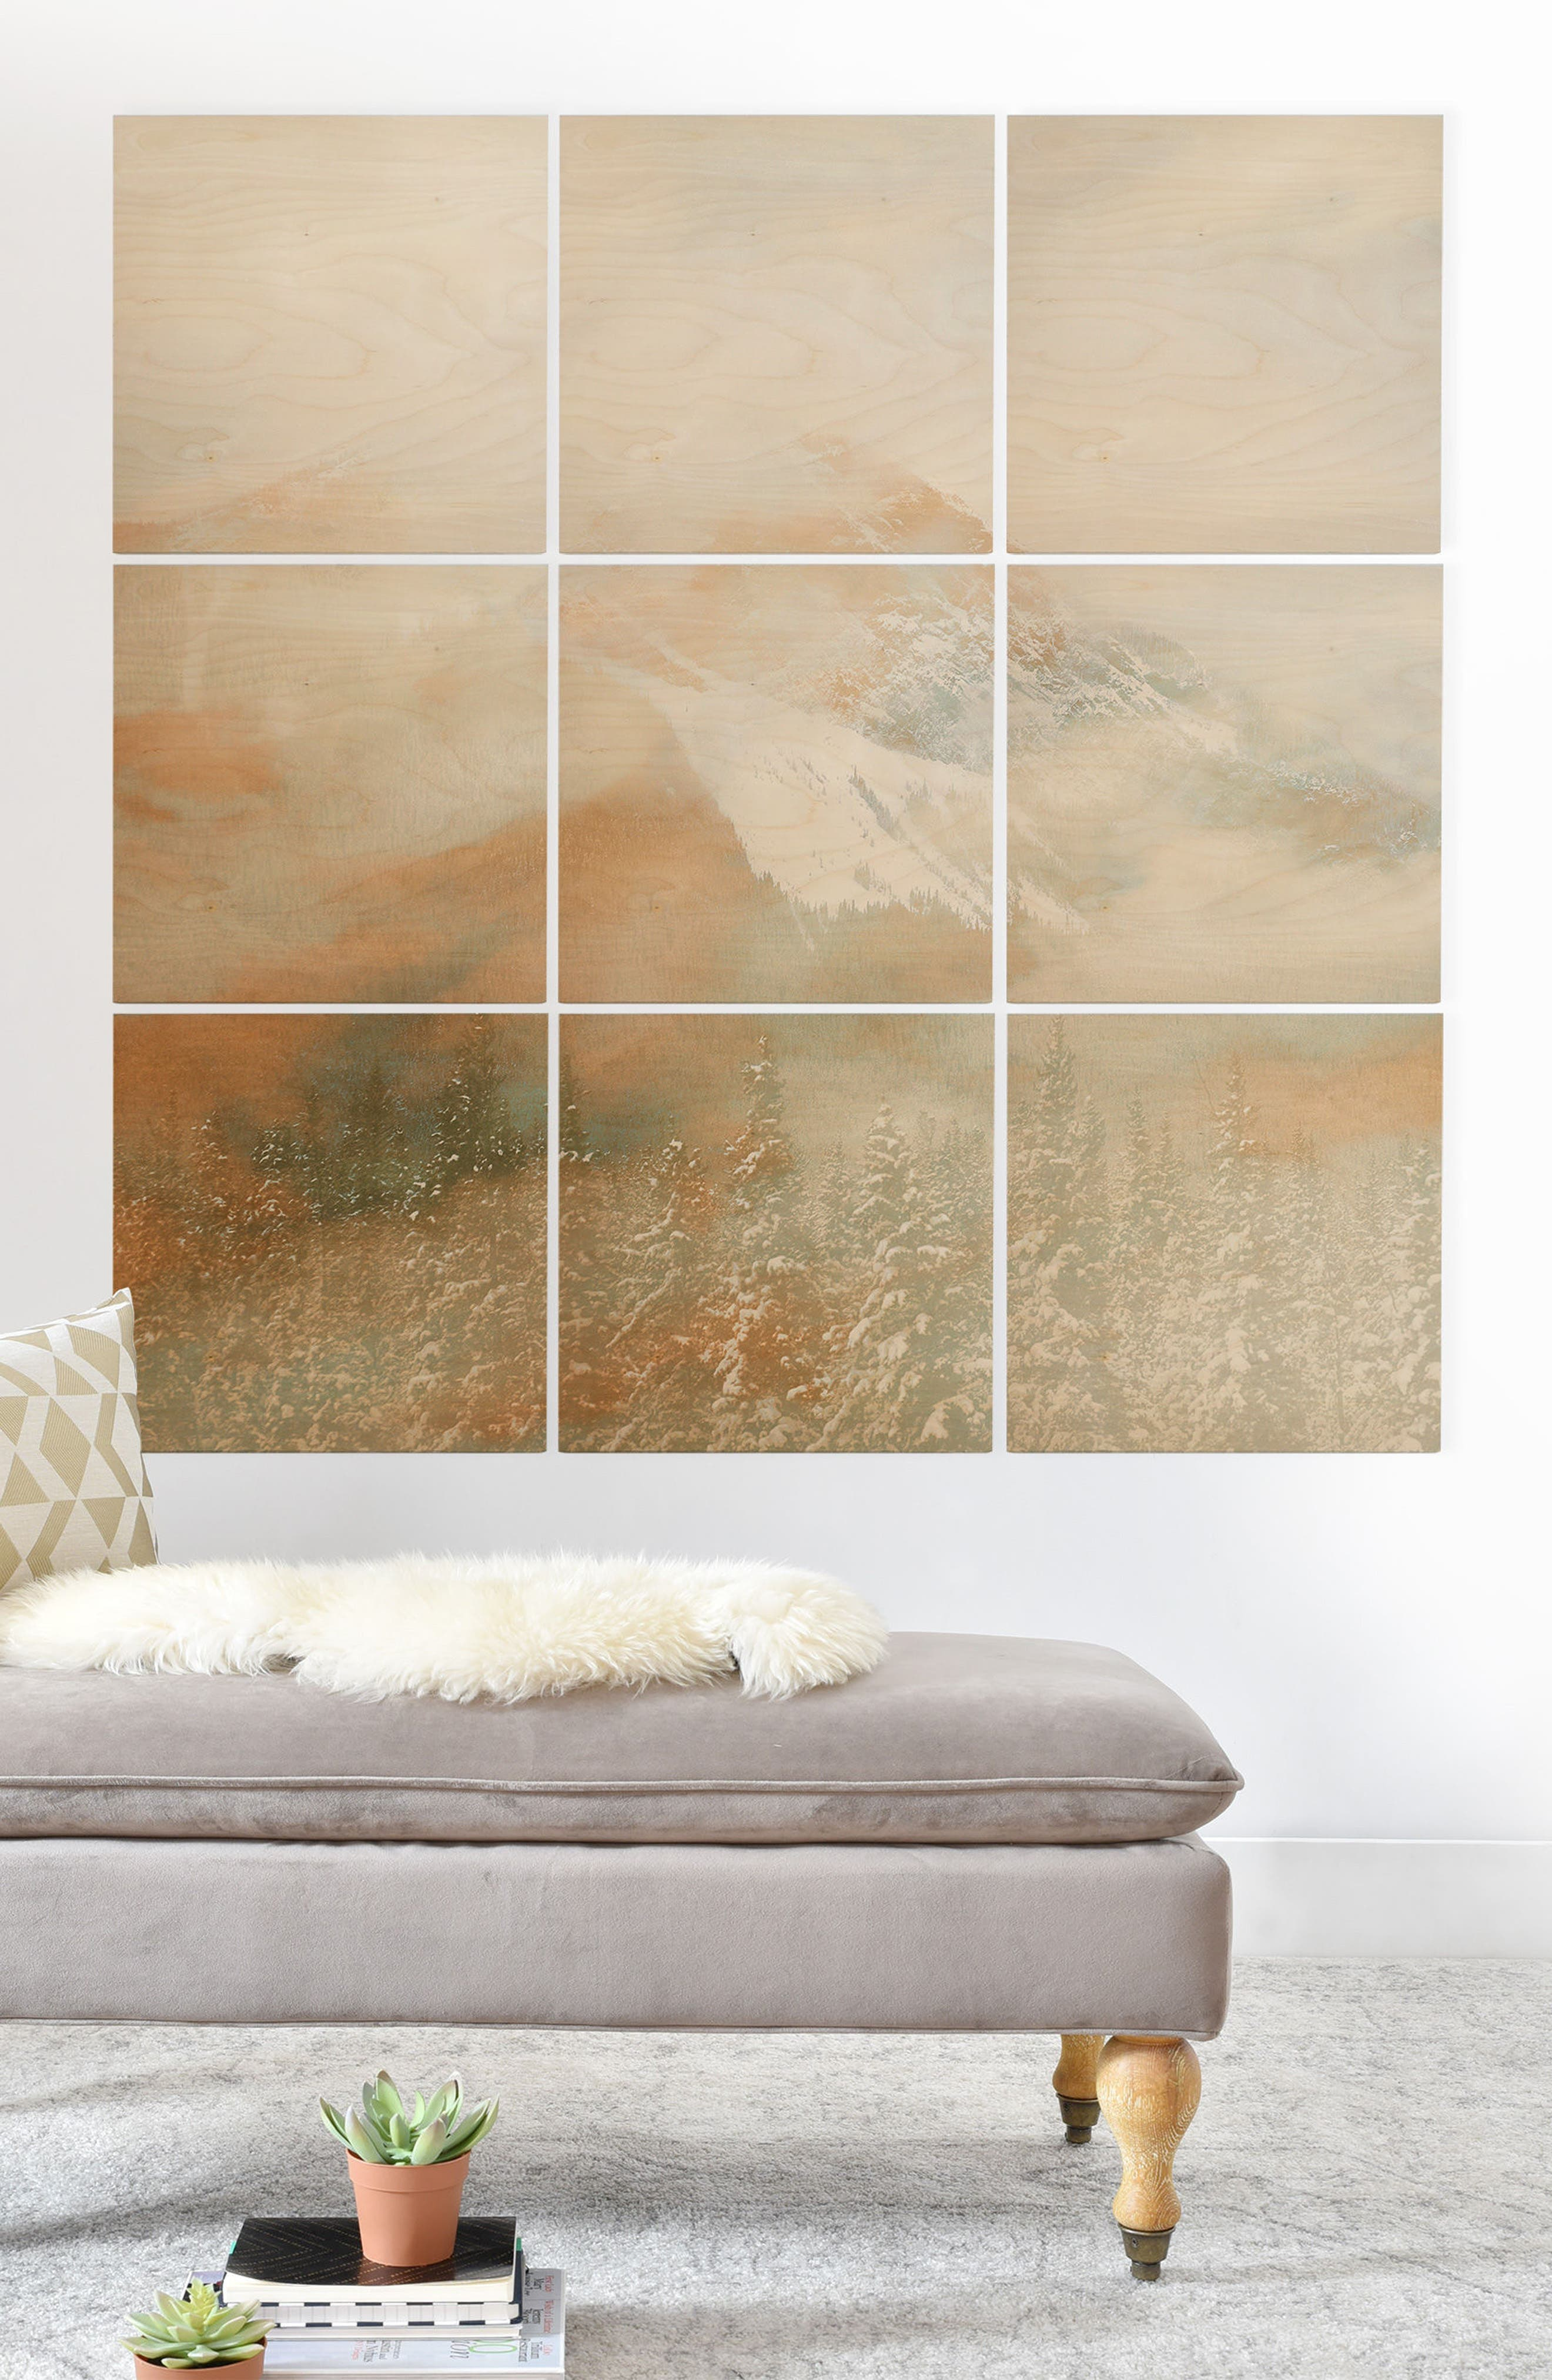 Golden Banff 9-Piece Wood Wall Mural,                             Alternate thumbnail 2, color,                             Gray/ Gold